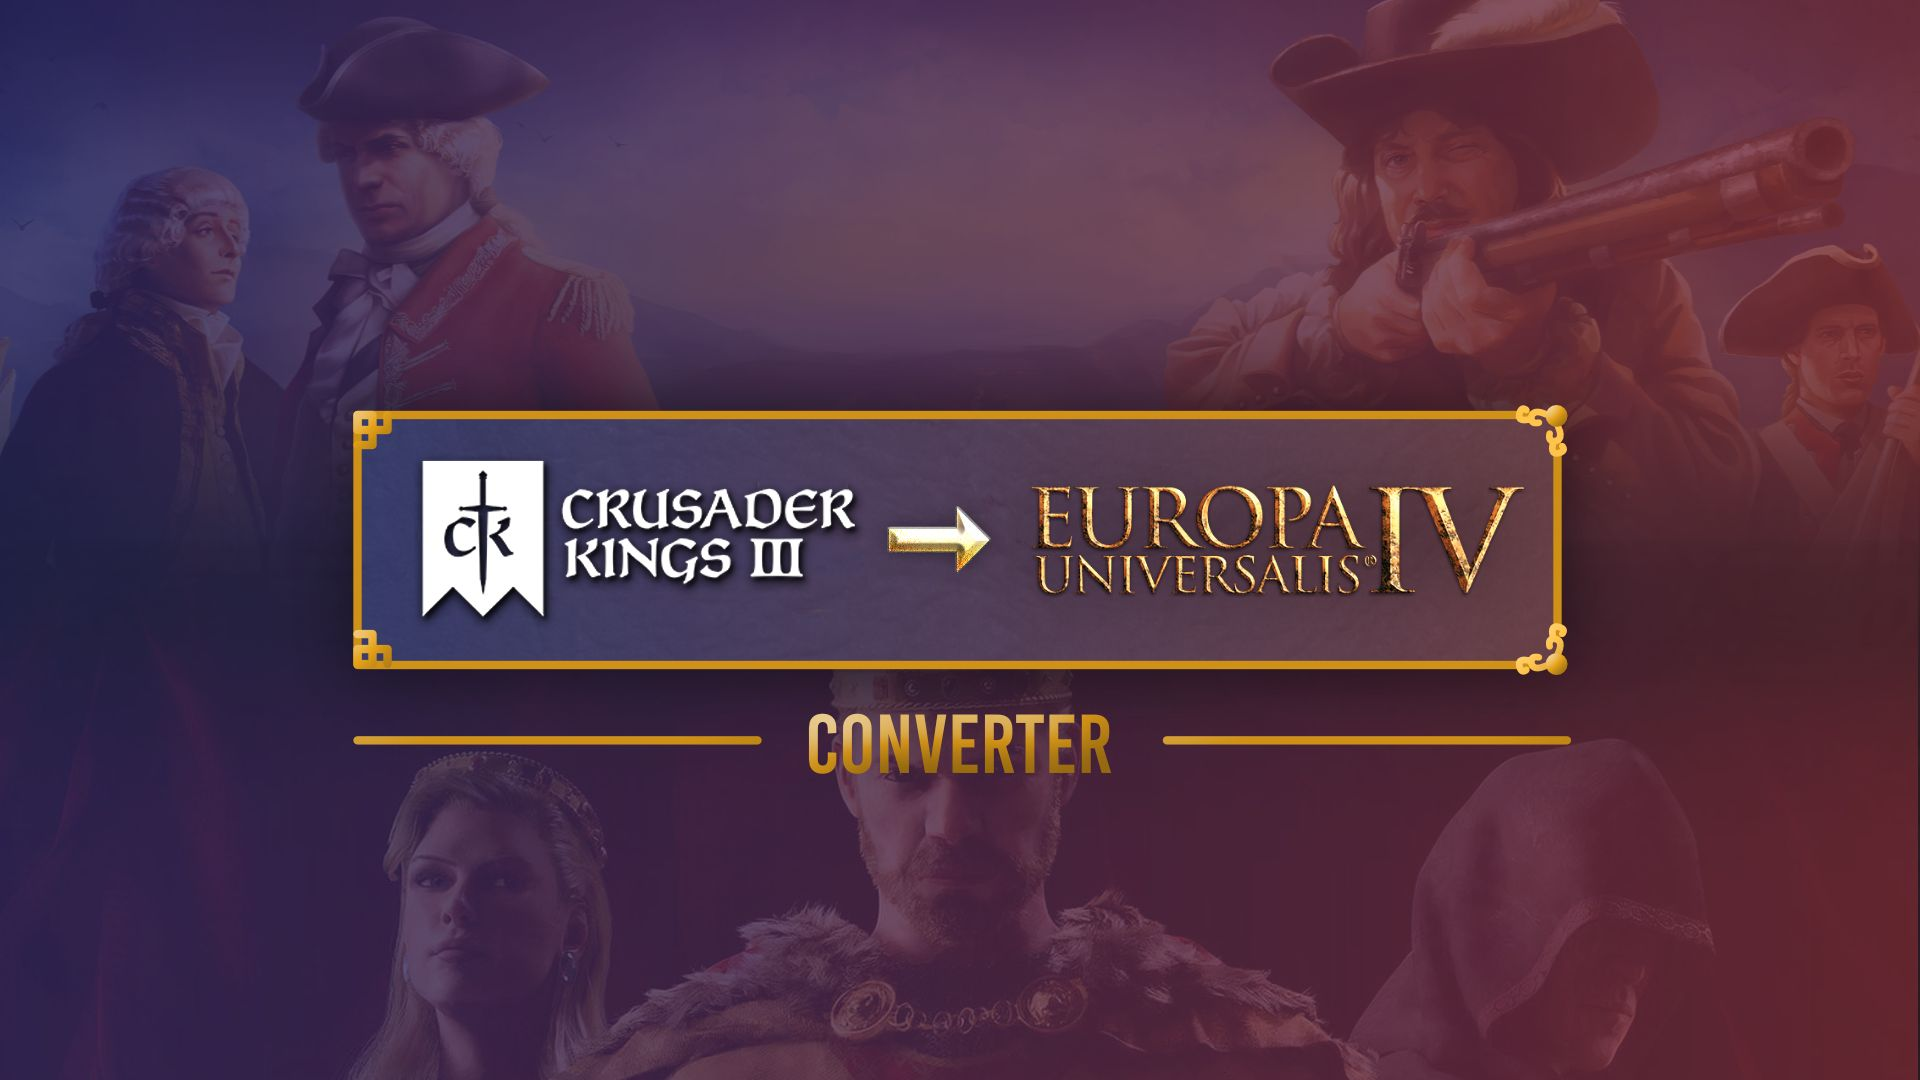 A piece of art showing the Crusader Kings 3 and Europa Universalis IV logos